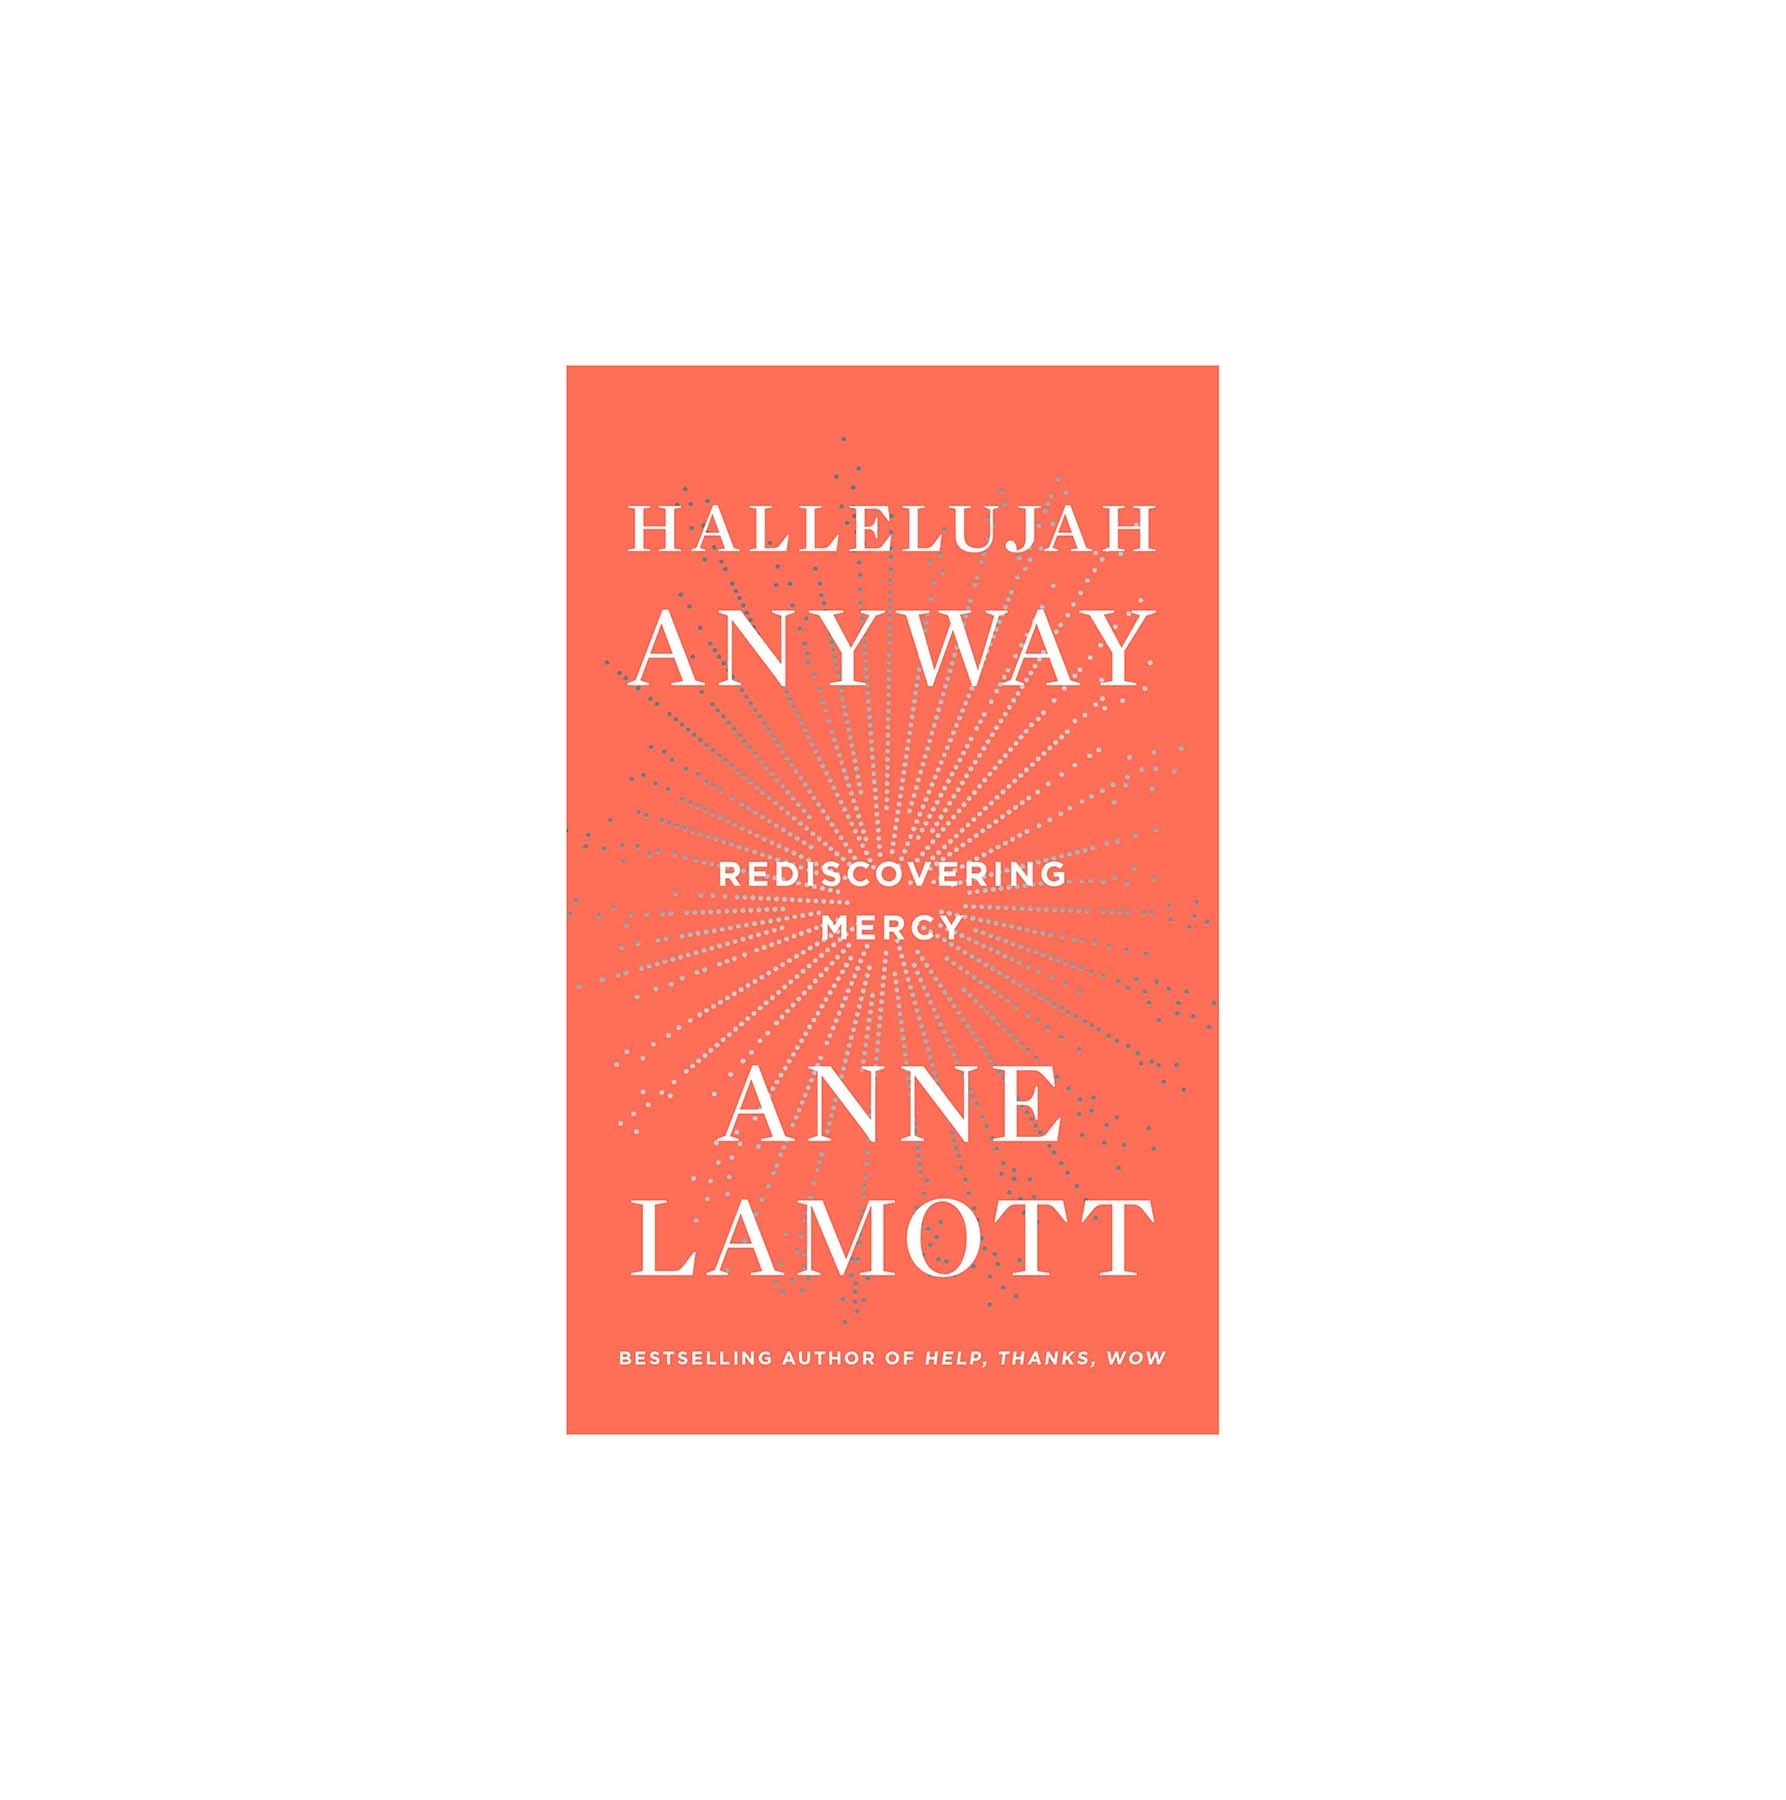 Hallelujah Anyway, by Anne Lamott